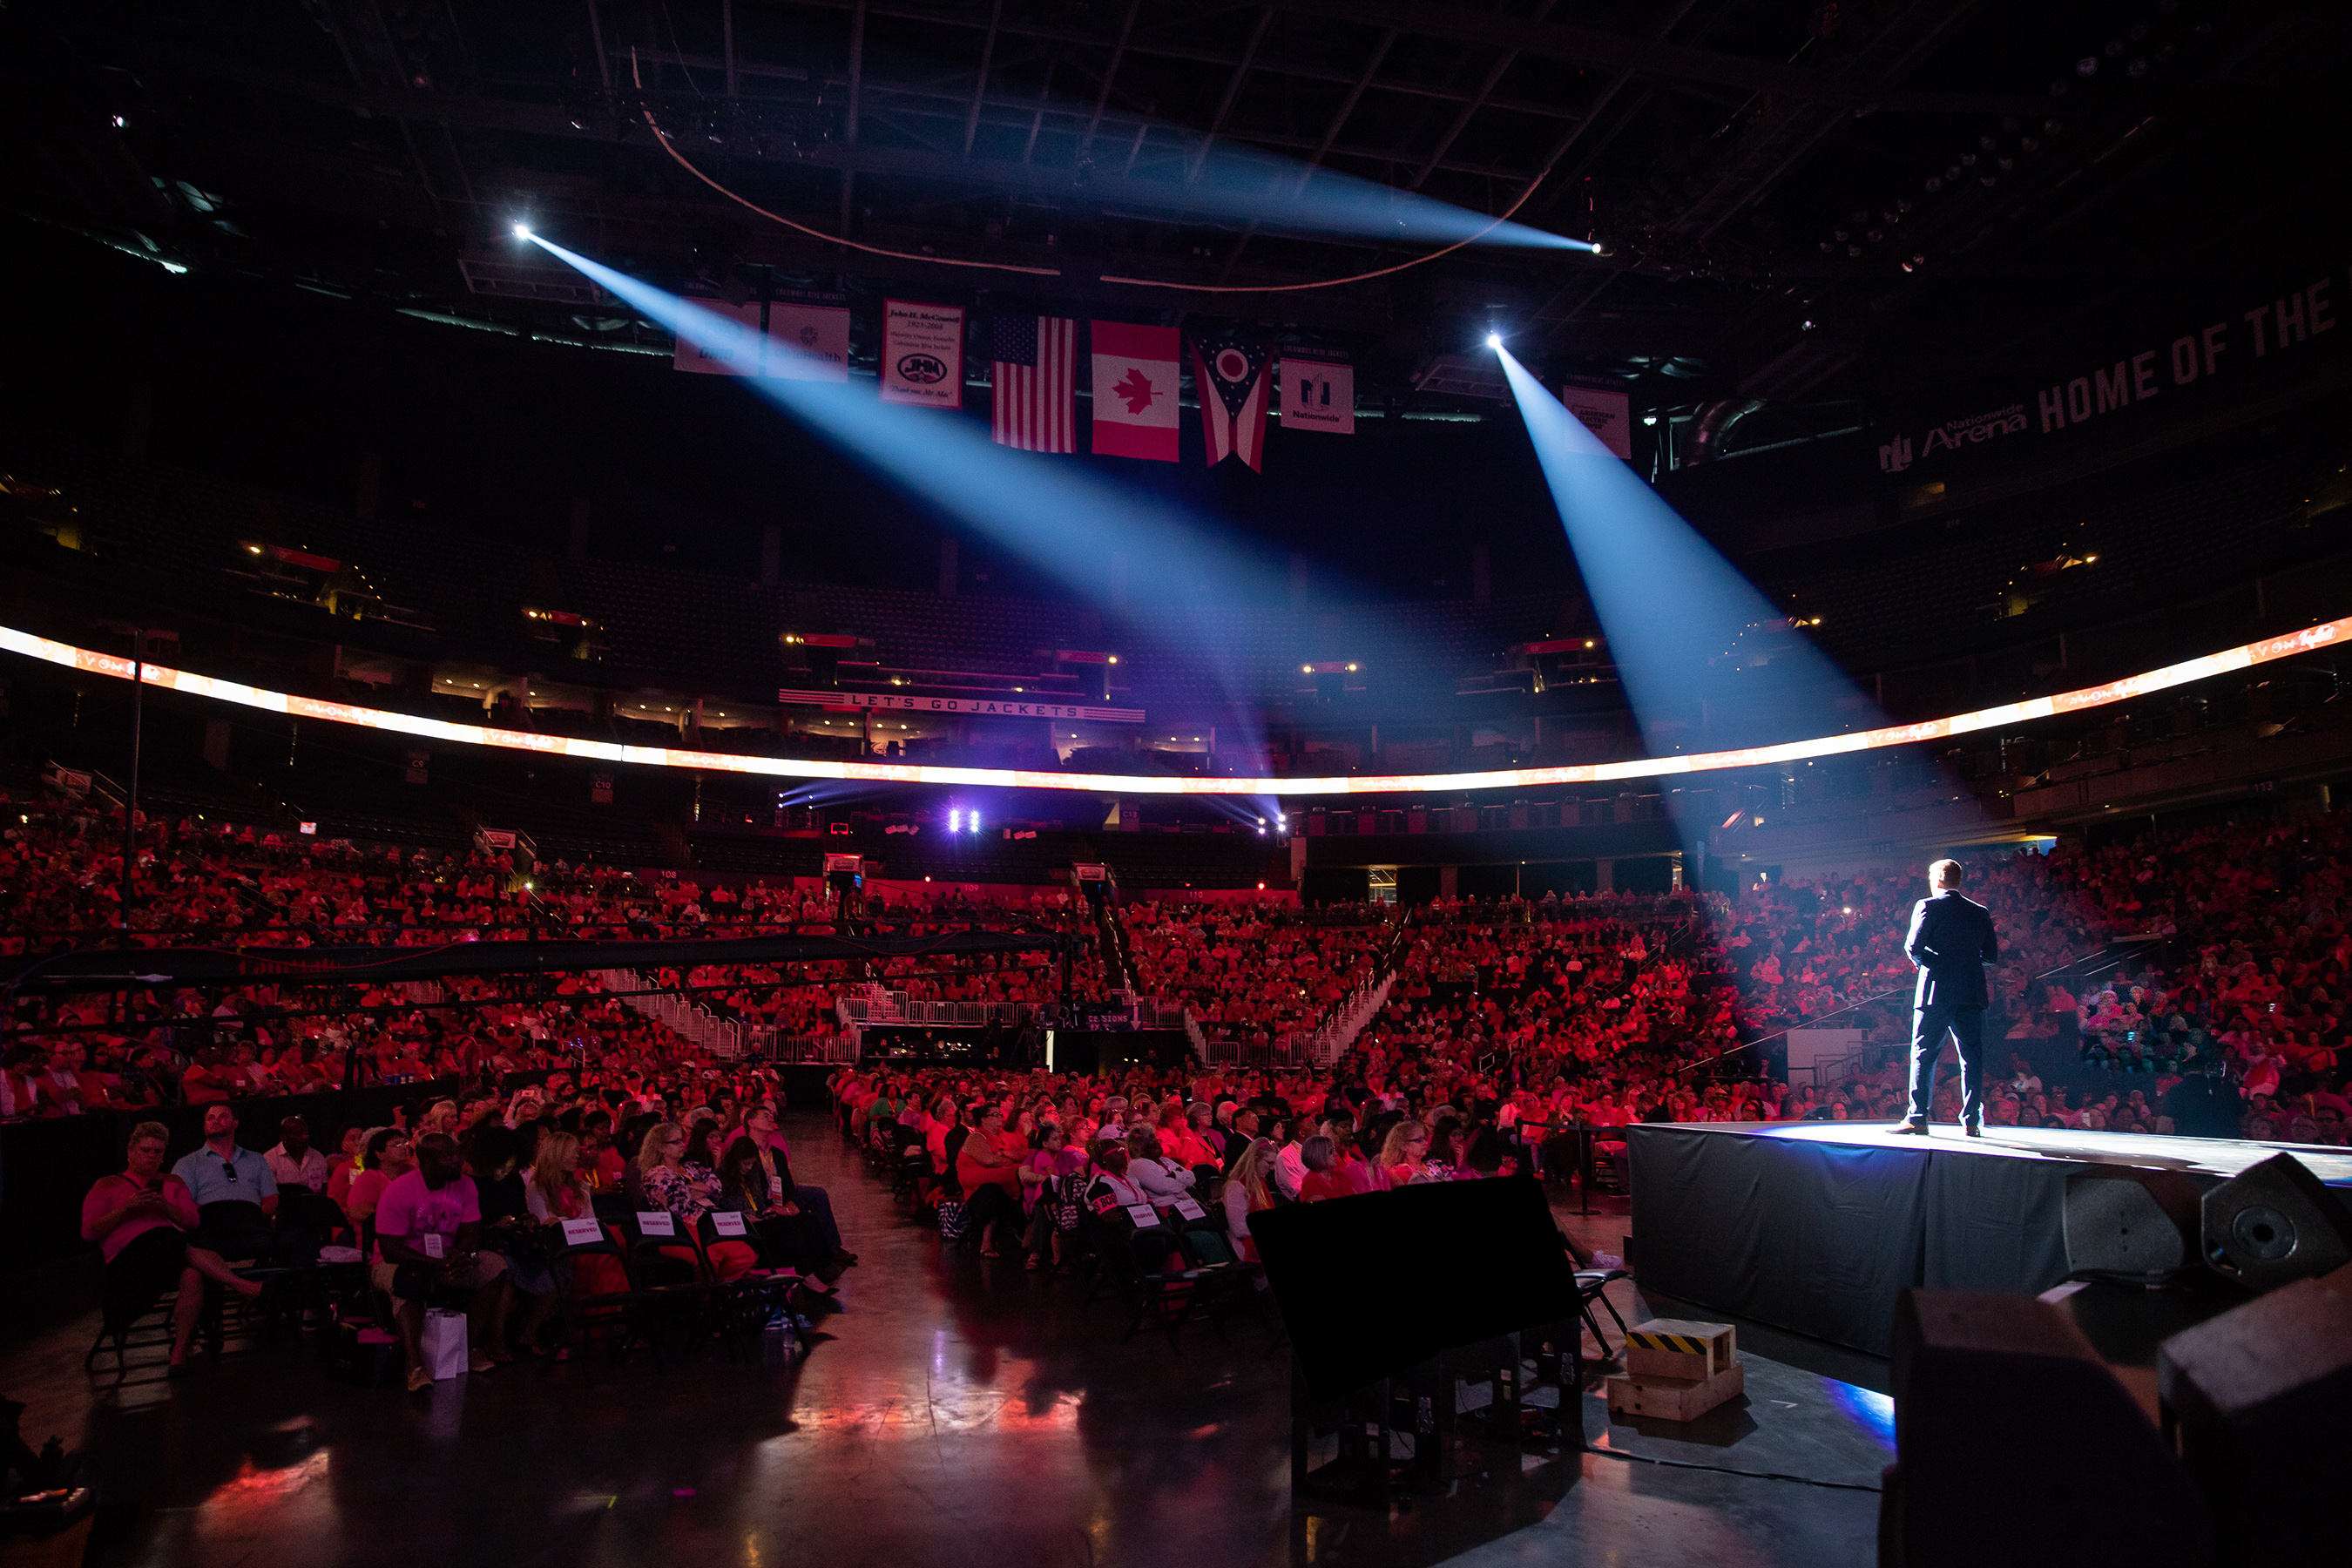 Scott White, Chief Executive Officer of New Avon, LLC, speaks before 5,000 Avon Representatives at RepFest 2018 at the Nationwide Arena in Columbus, OH.